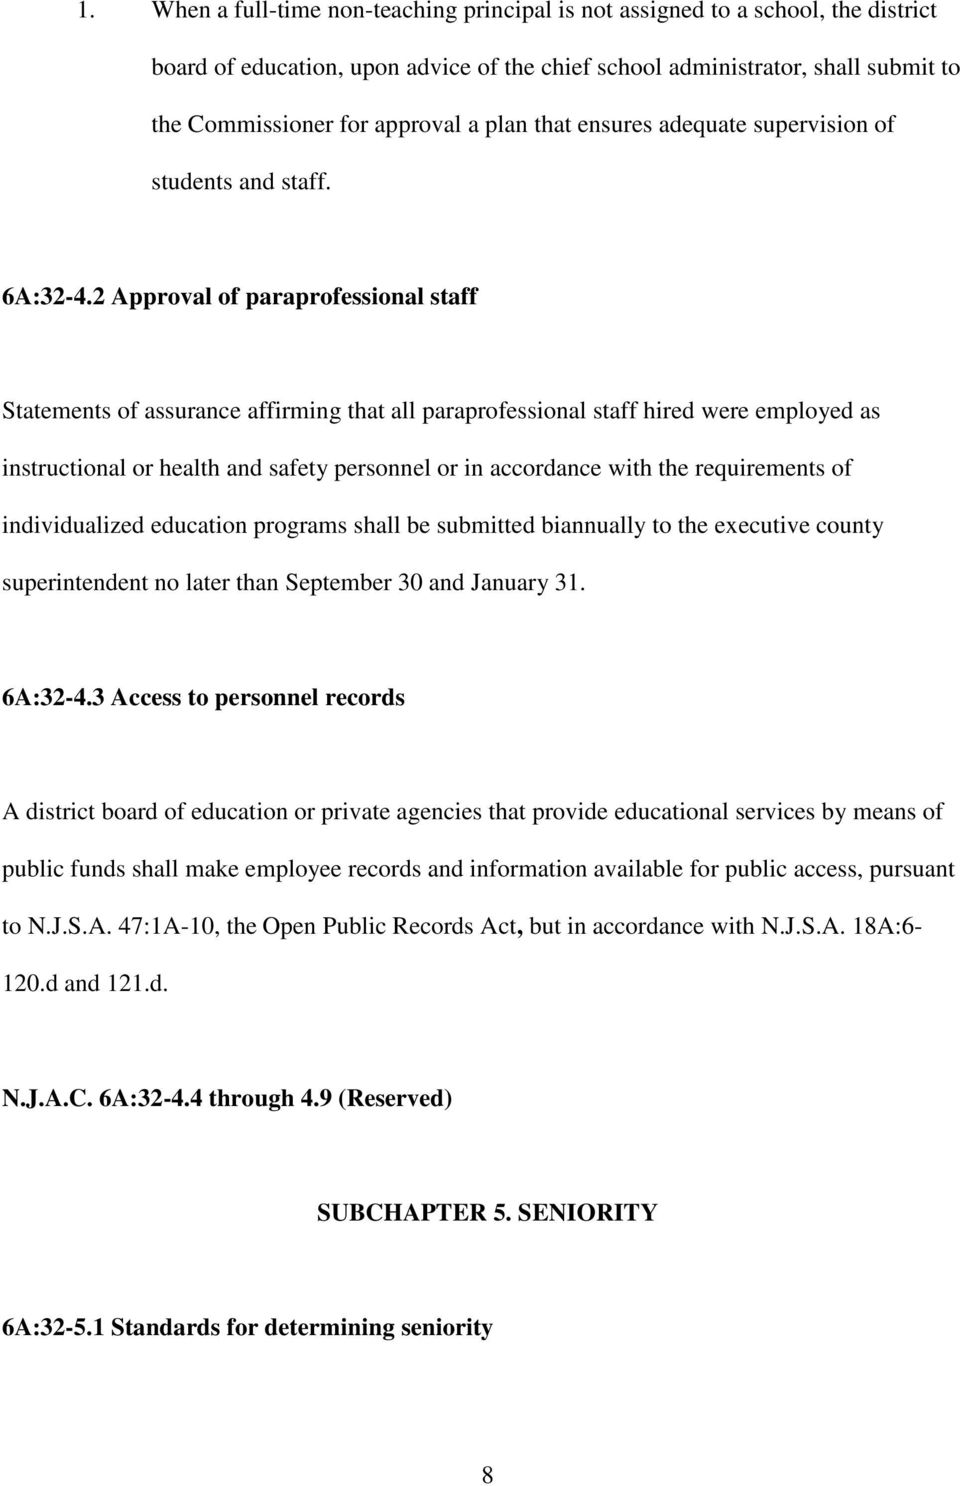 2 Approval of paraprofessional staff Statements of assurance affirming that all paraprofessional staff hired were employed as instructional or health and safety personnel or in accordance with the